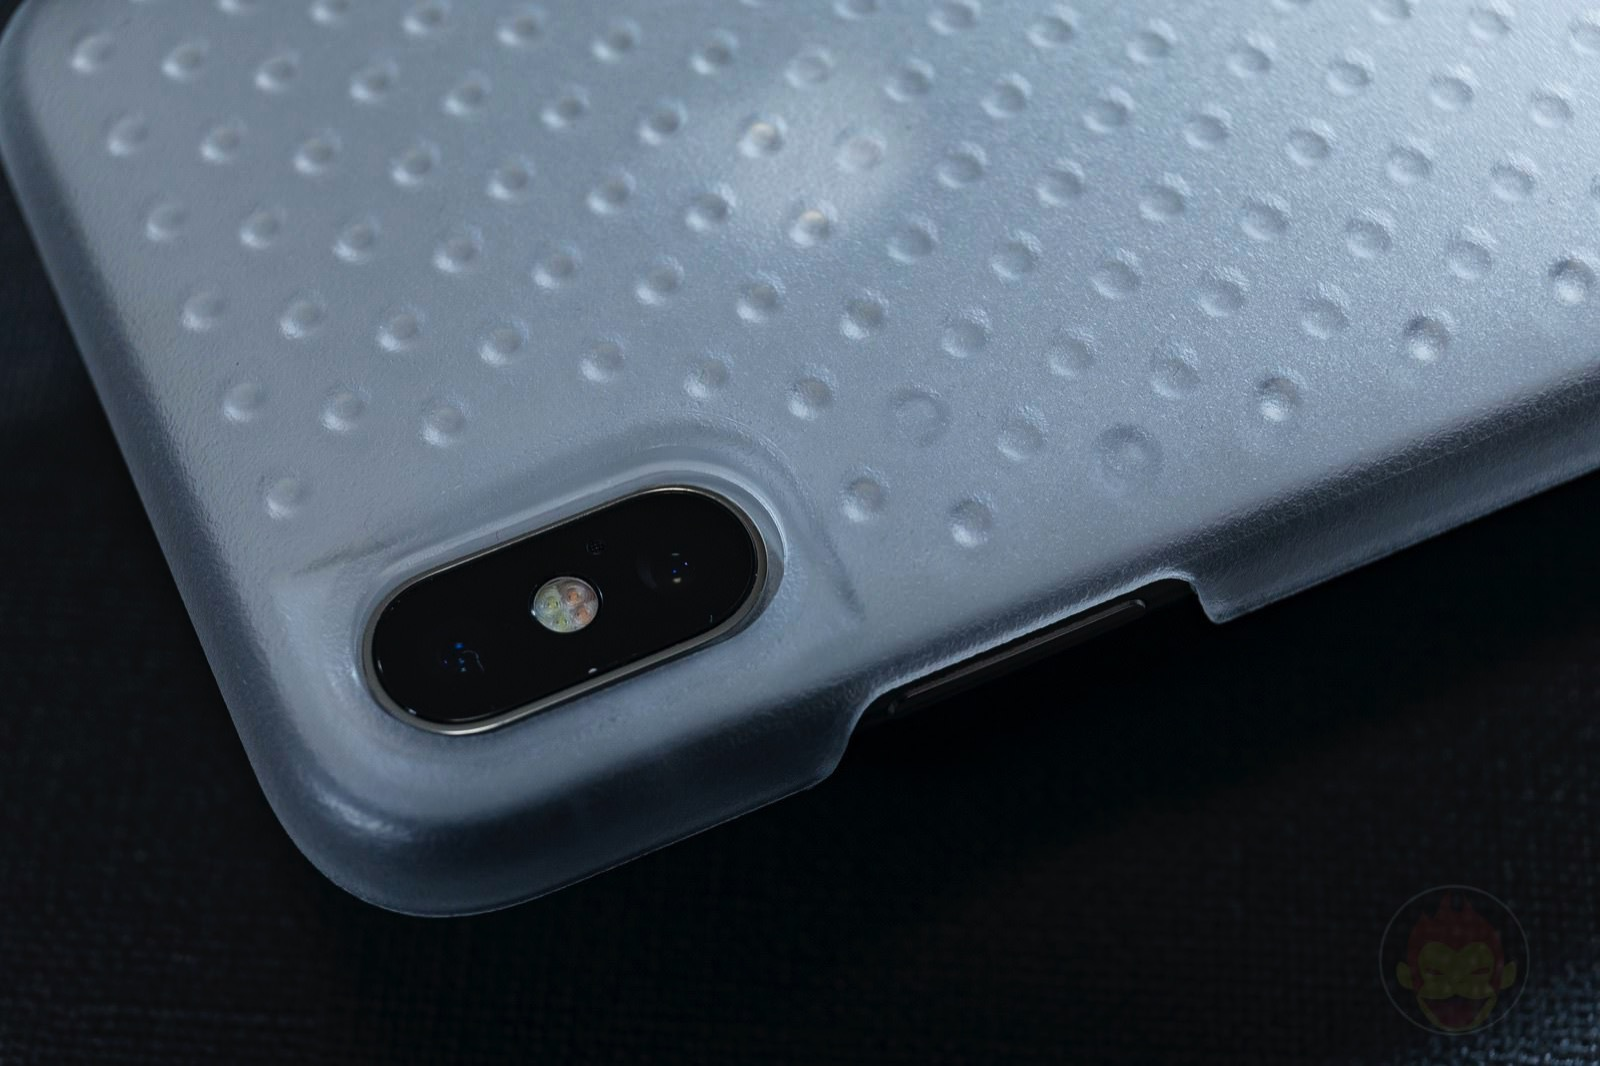 AndMesh-Haptic-Case-for-iPhone-02.jpg